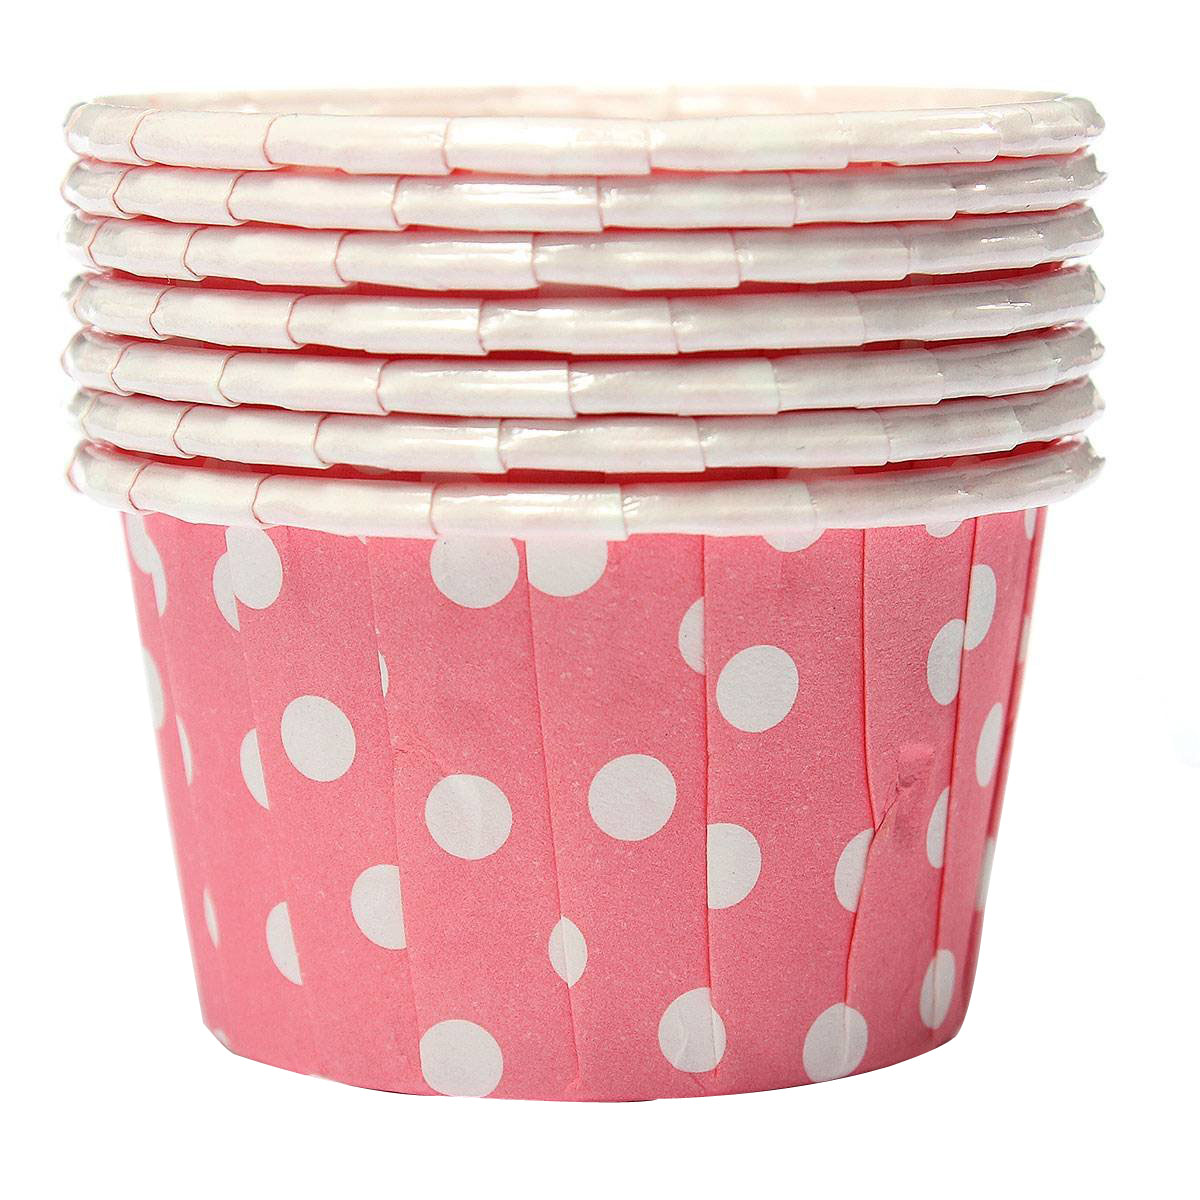 ab053f598 ③100x Cupcake papel pastel cake Tazas liner muffin Pink - a47